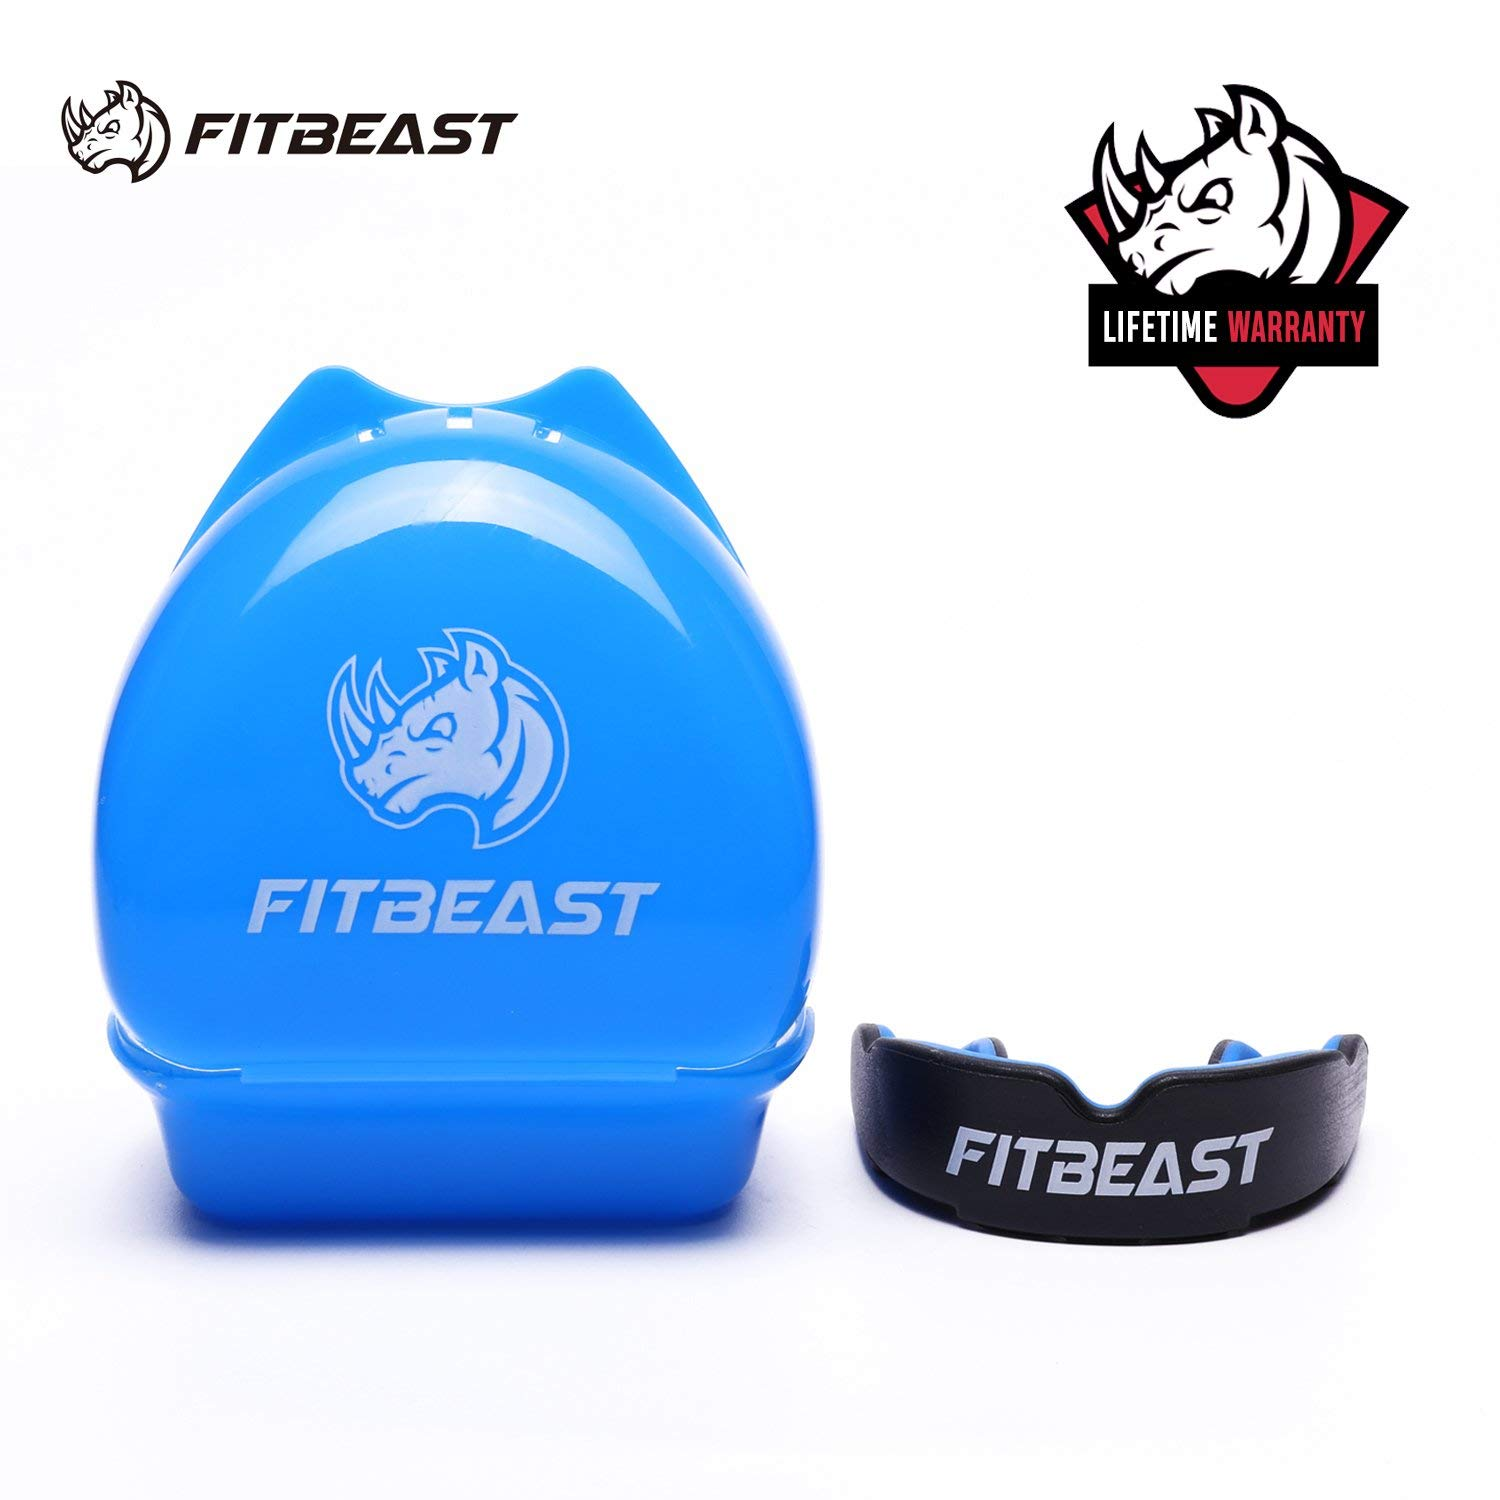 FitBeast Mouth Guard Sports Mouthguard Gum Shield for boxing, MMA, rugby, football, lacrosse, basketball, muay thai, hockey, karate martial arts and all contact sports, Youth & Adult Sizes With case